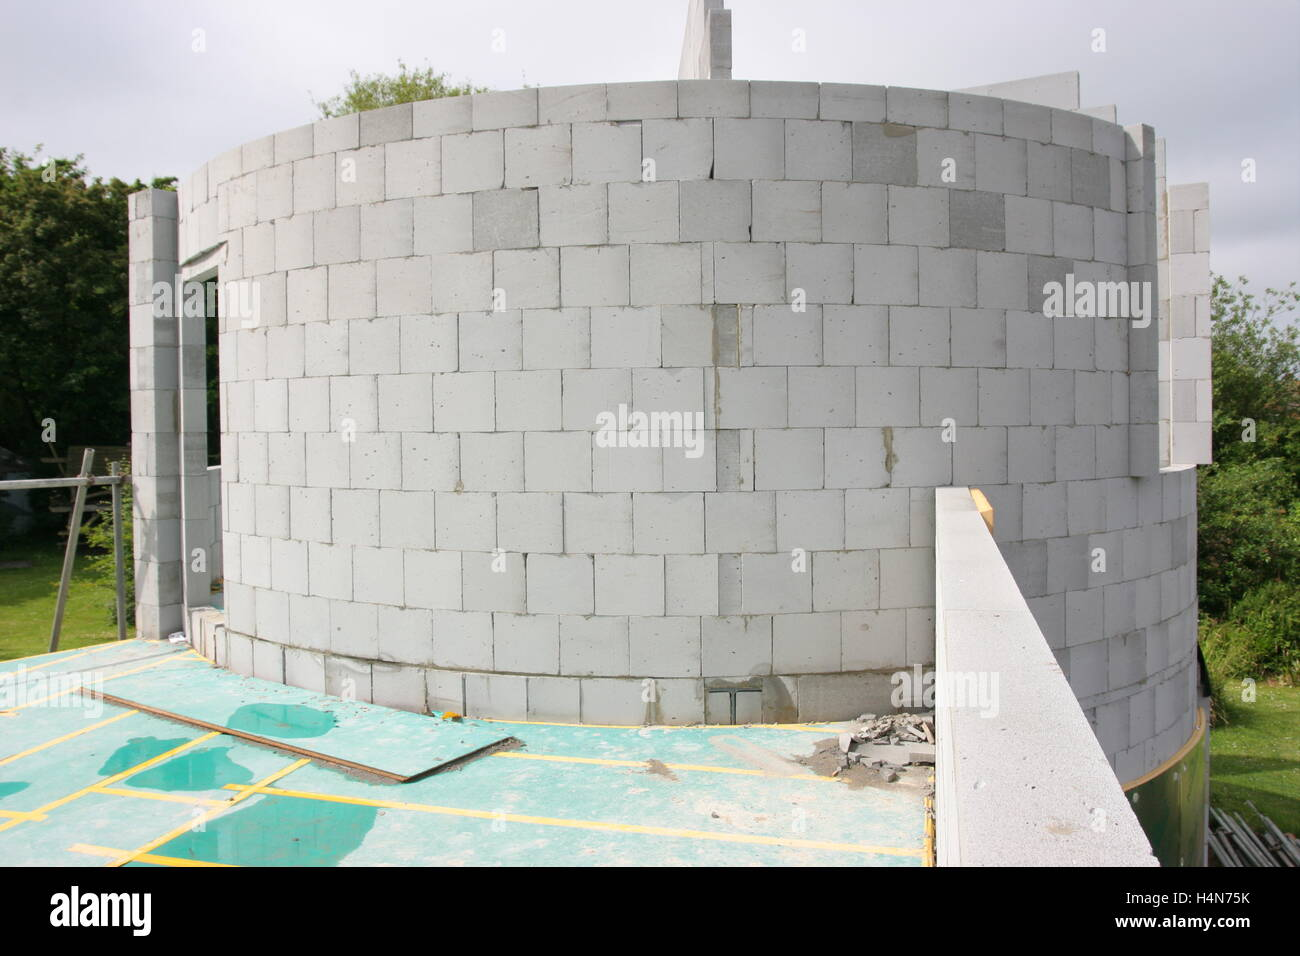 Build A New House concrete blocks used to build a circular turret room on a new